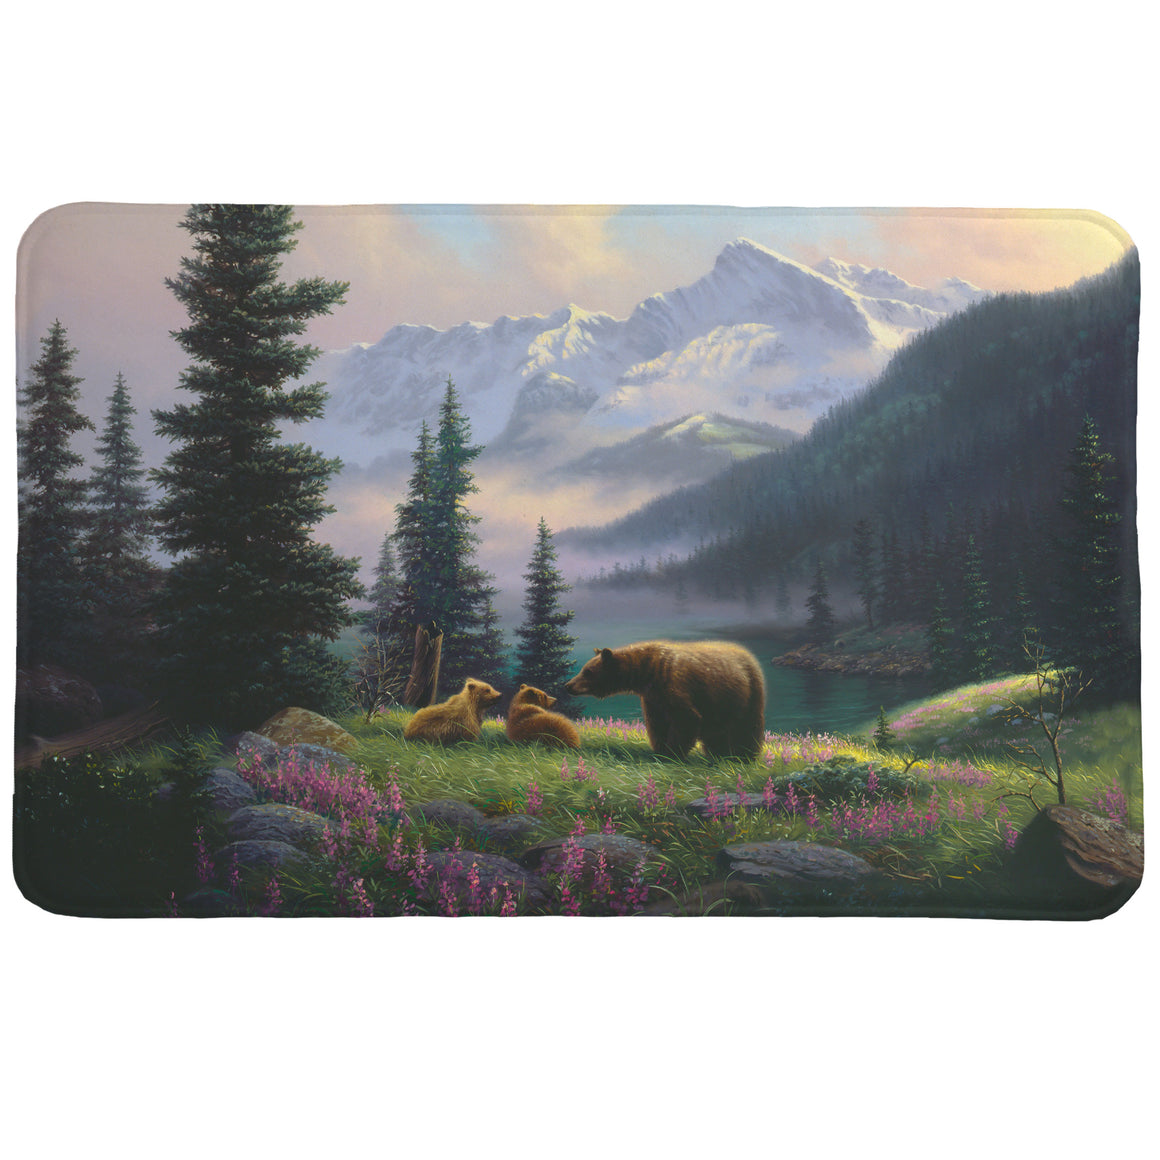 Mountain Bear with Cubs Memory Foam Rug has a majestic and serene mountain landscape that features a brown bear and her two cubs in a field of purple wildflowers.